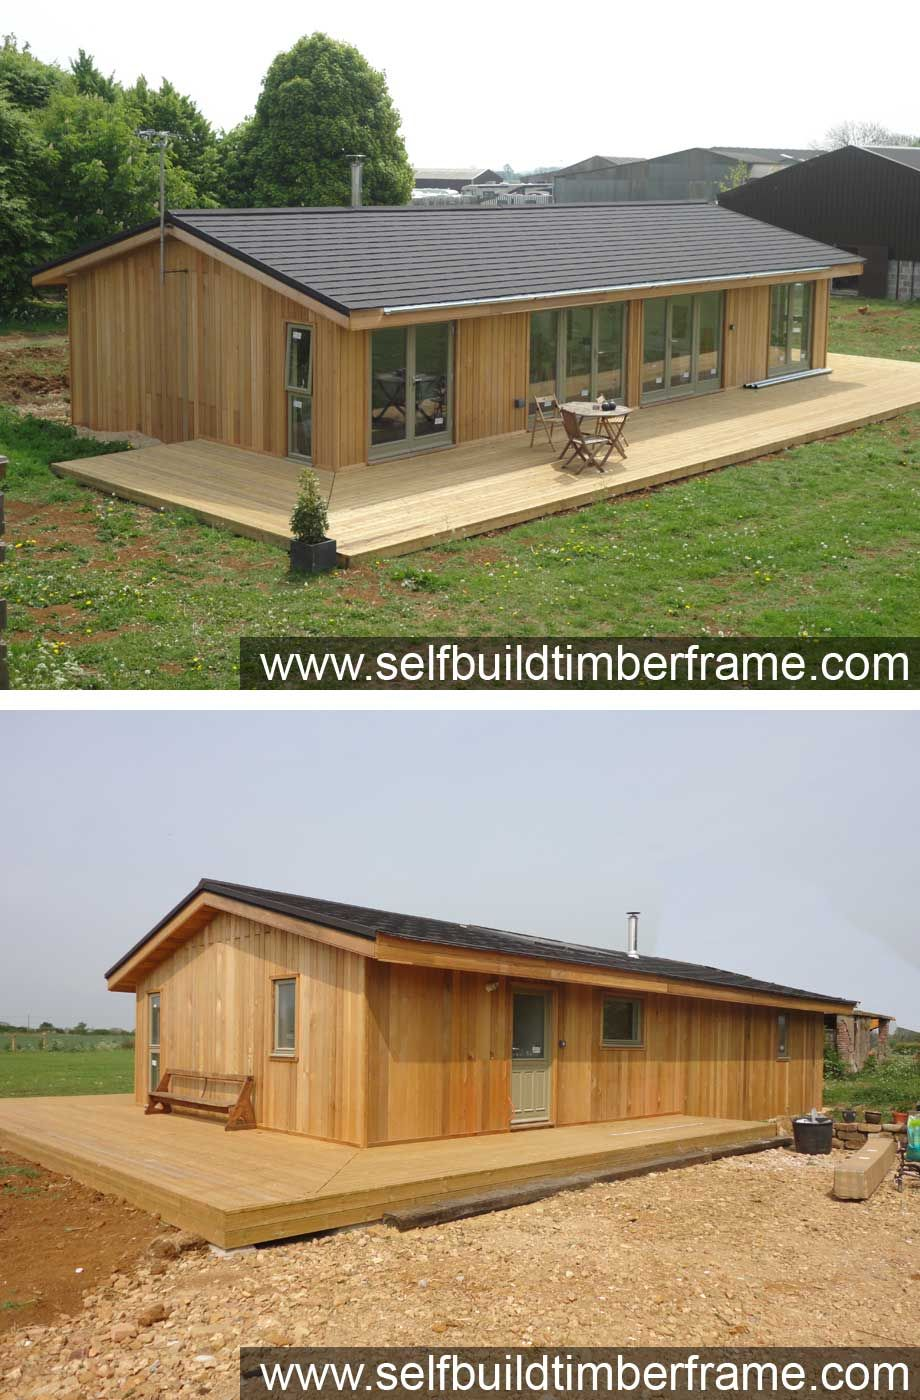 cedar mobile homes for sale self build twin unit mobile home old mobile homes trailers. Black Bedroom Furniture Sets. Home Design Ideas